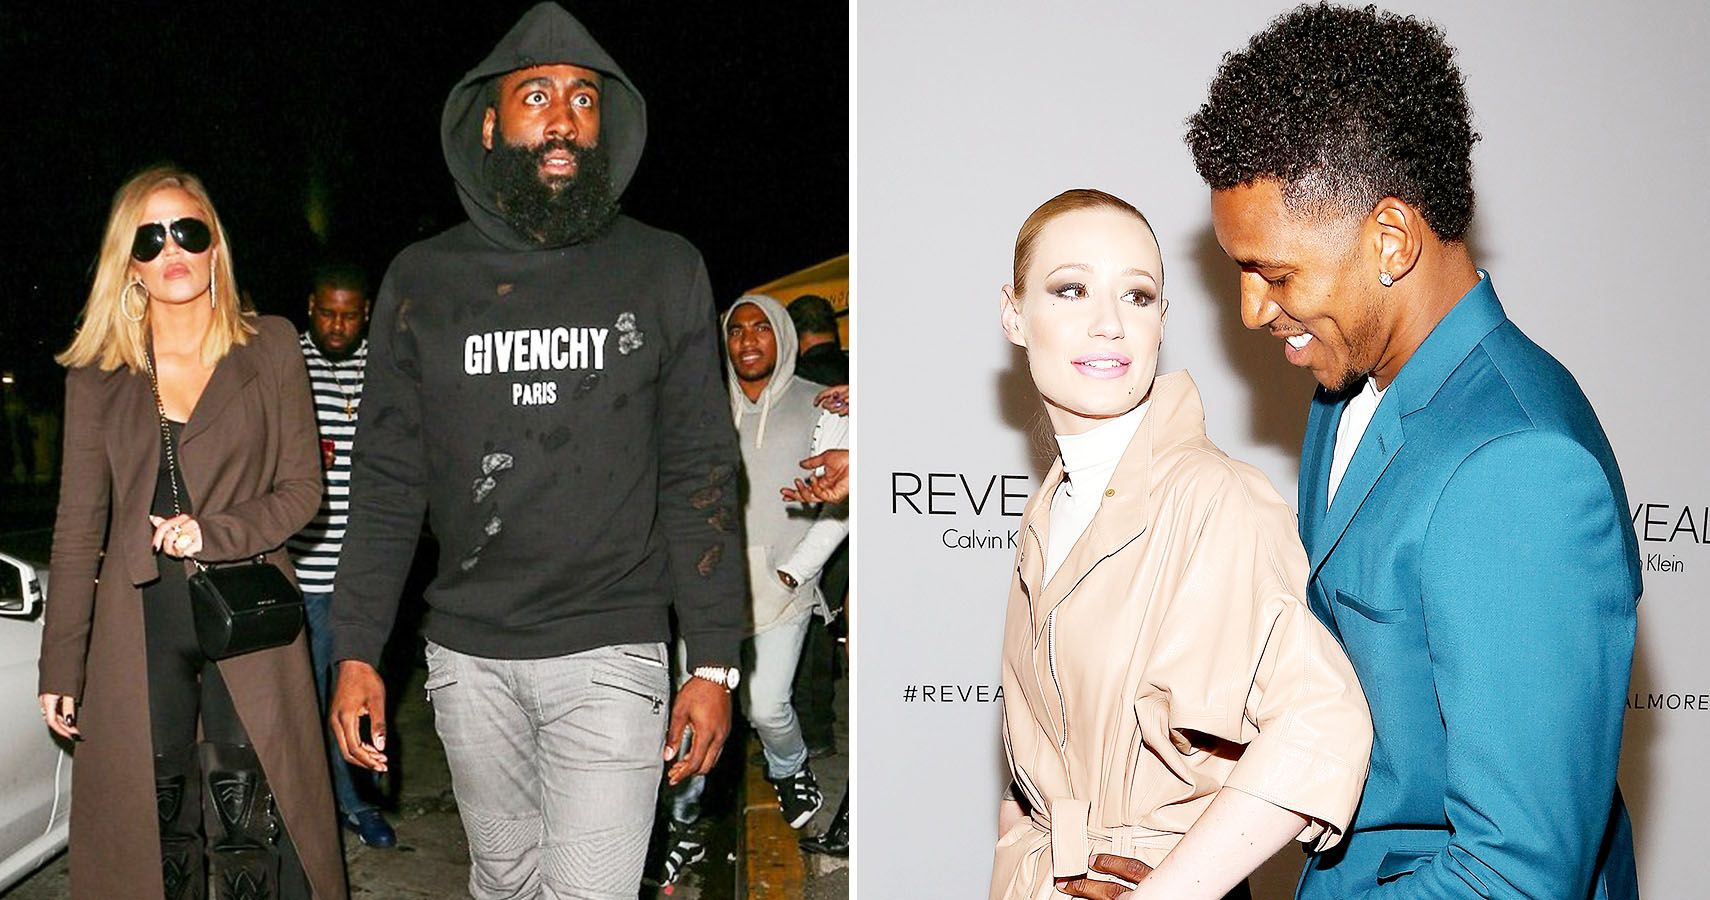 ad37eed9670c 10 Women These NBA Stars Regret Dating And 5 They Regret Losing